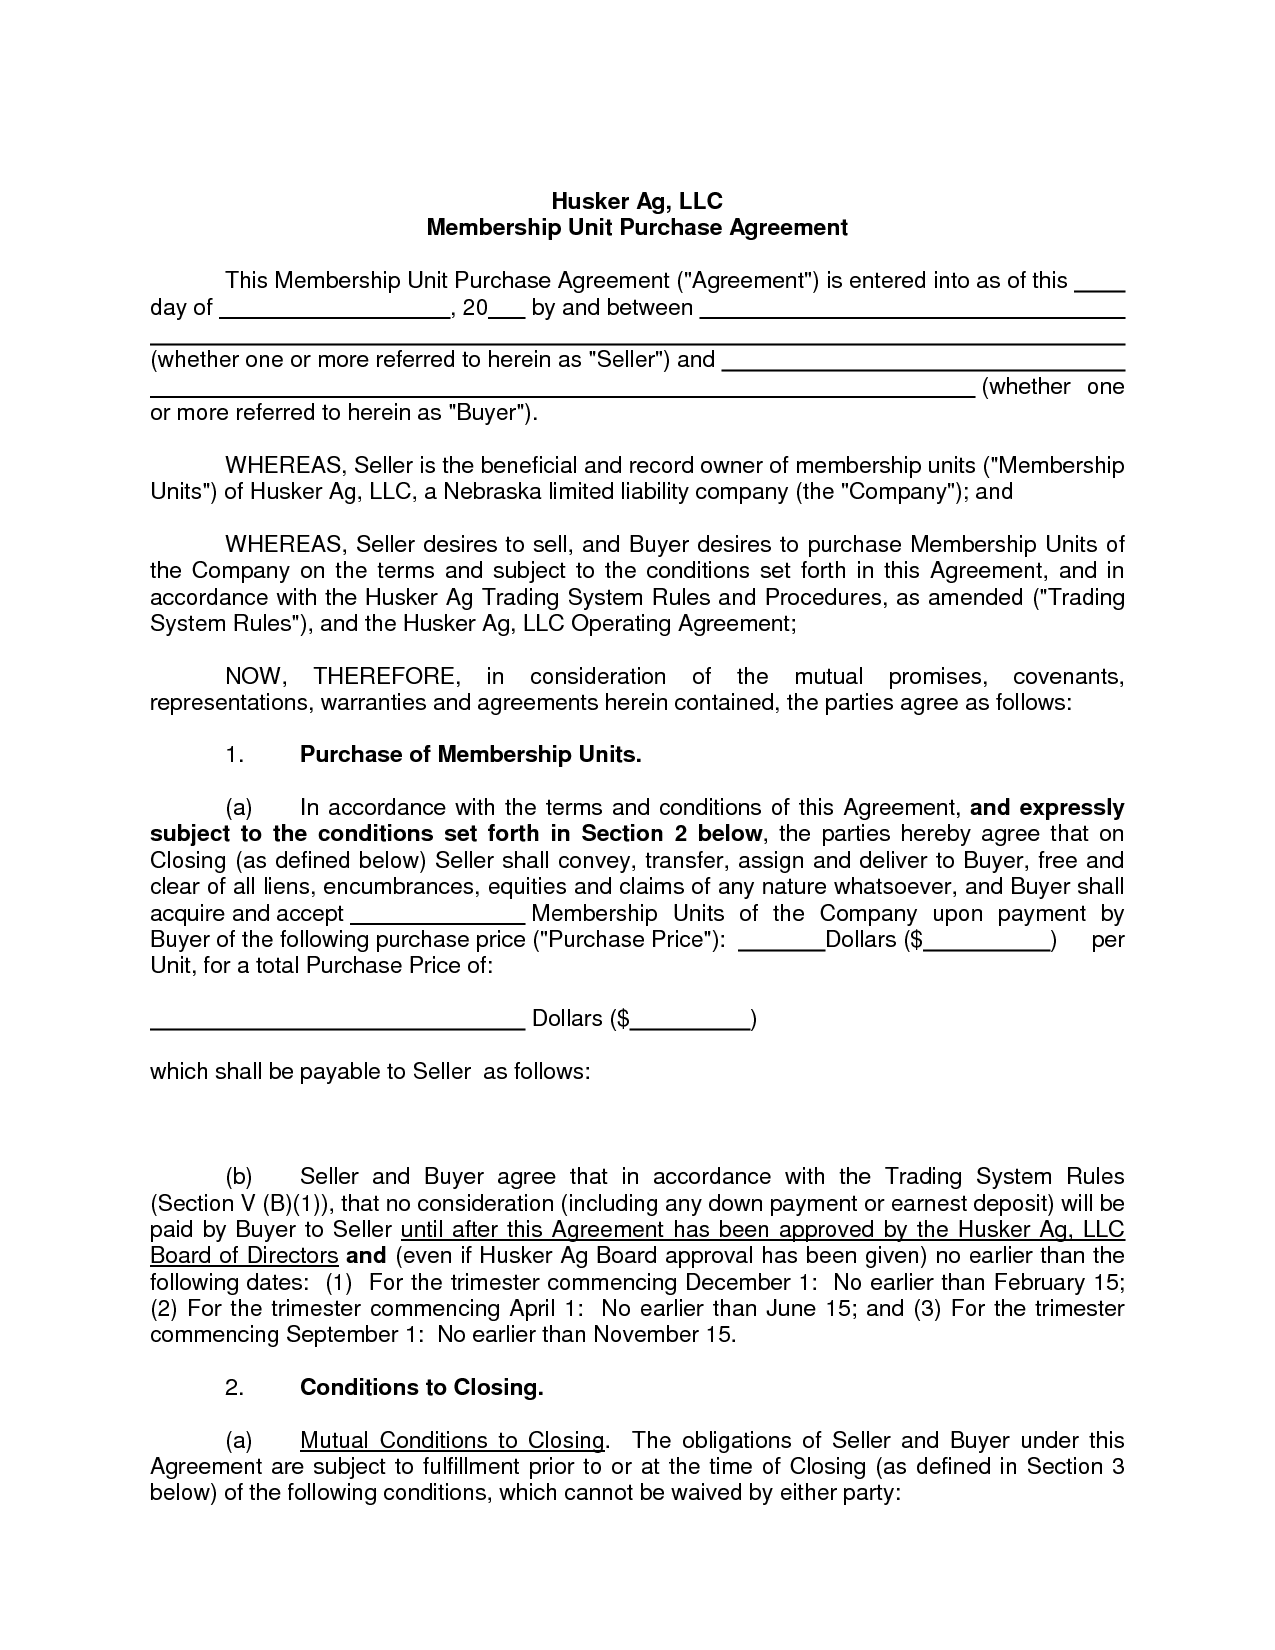 Sales Agreement Template Fresh Free Blank Purchase Agreement form